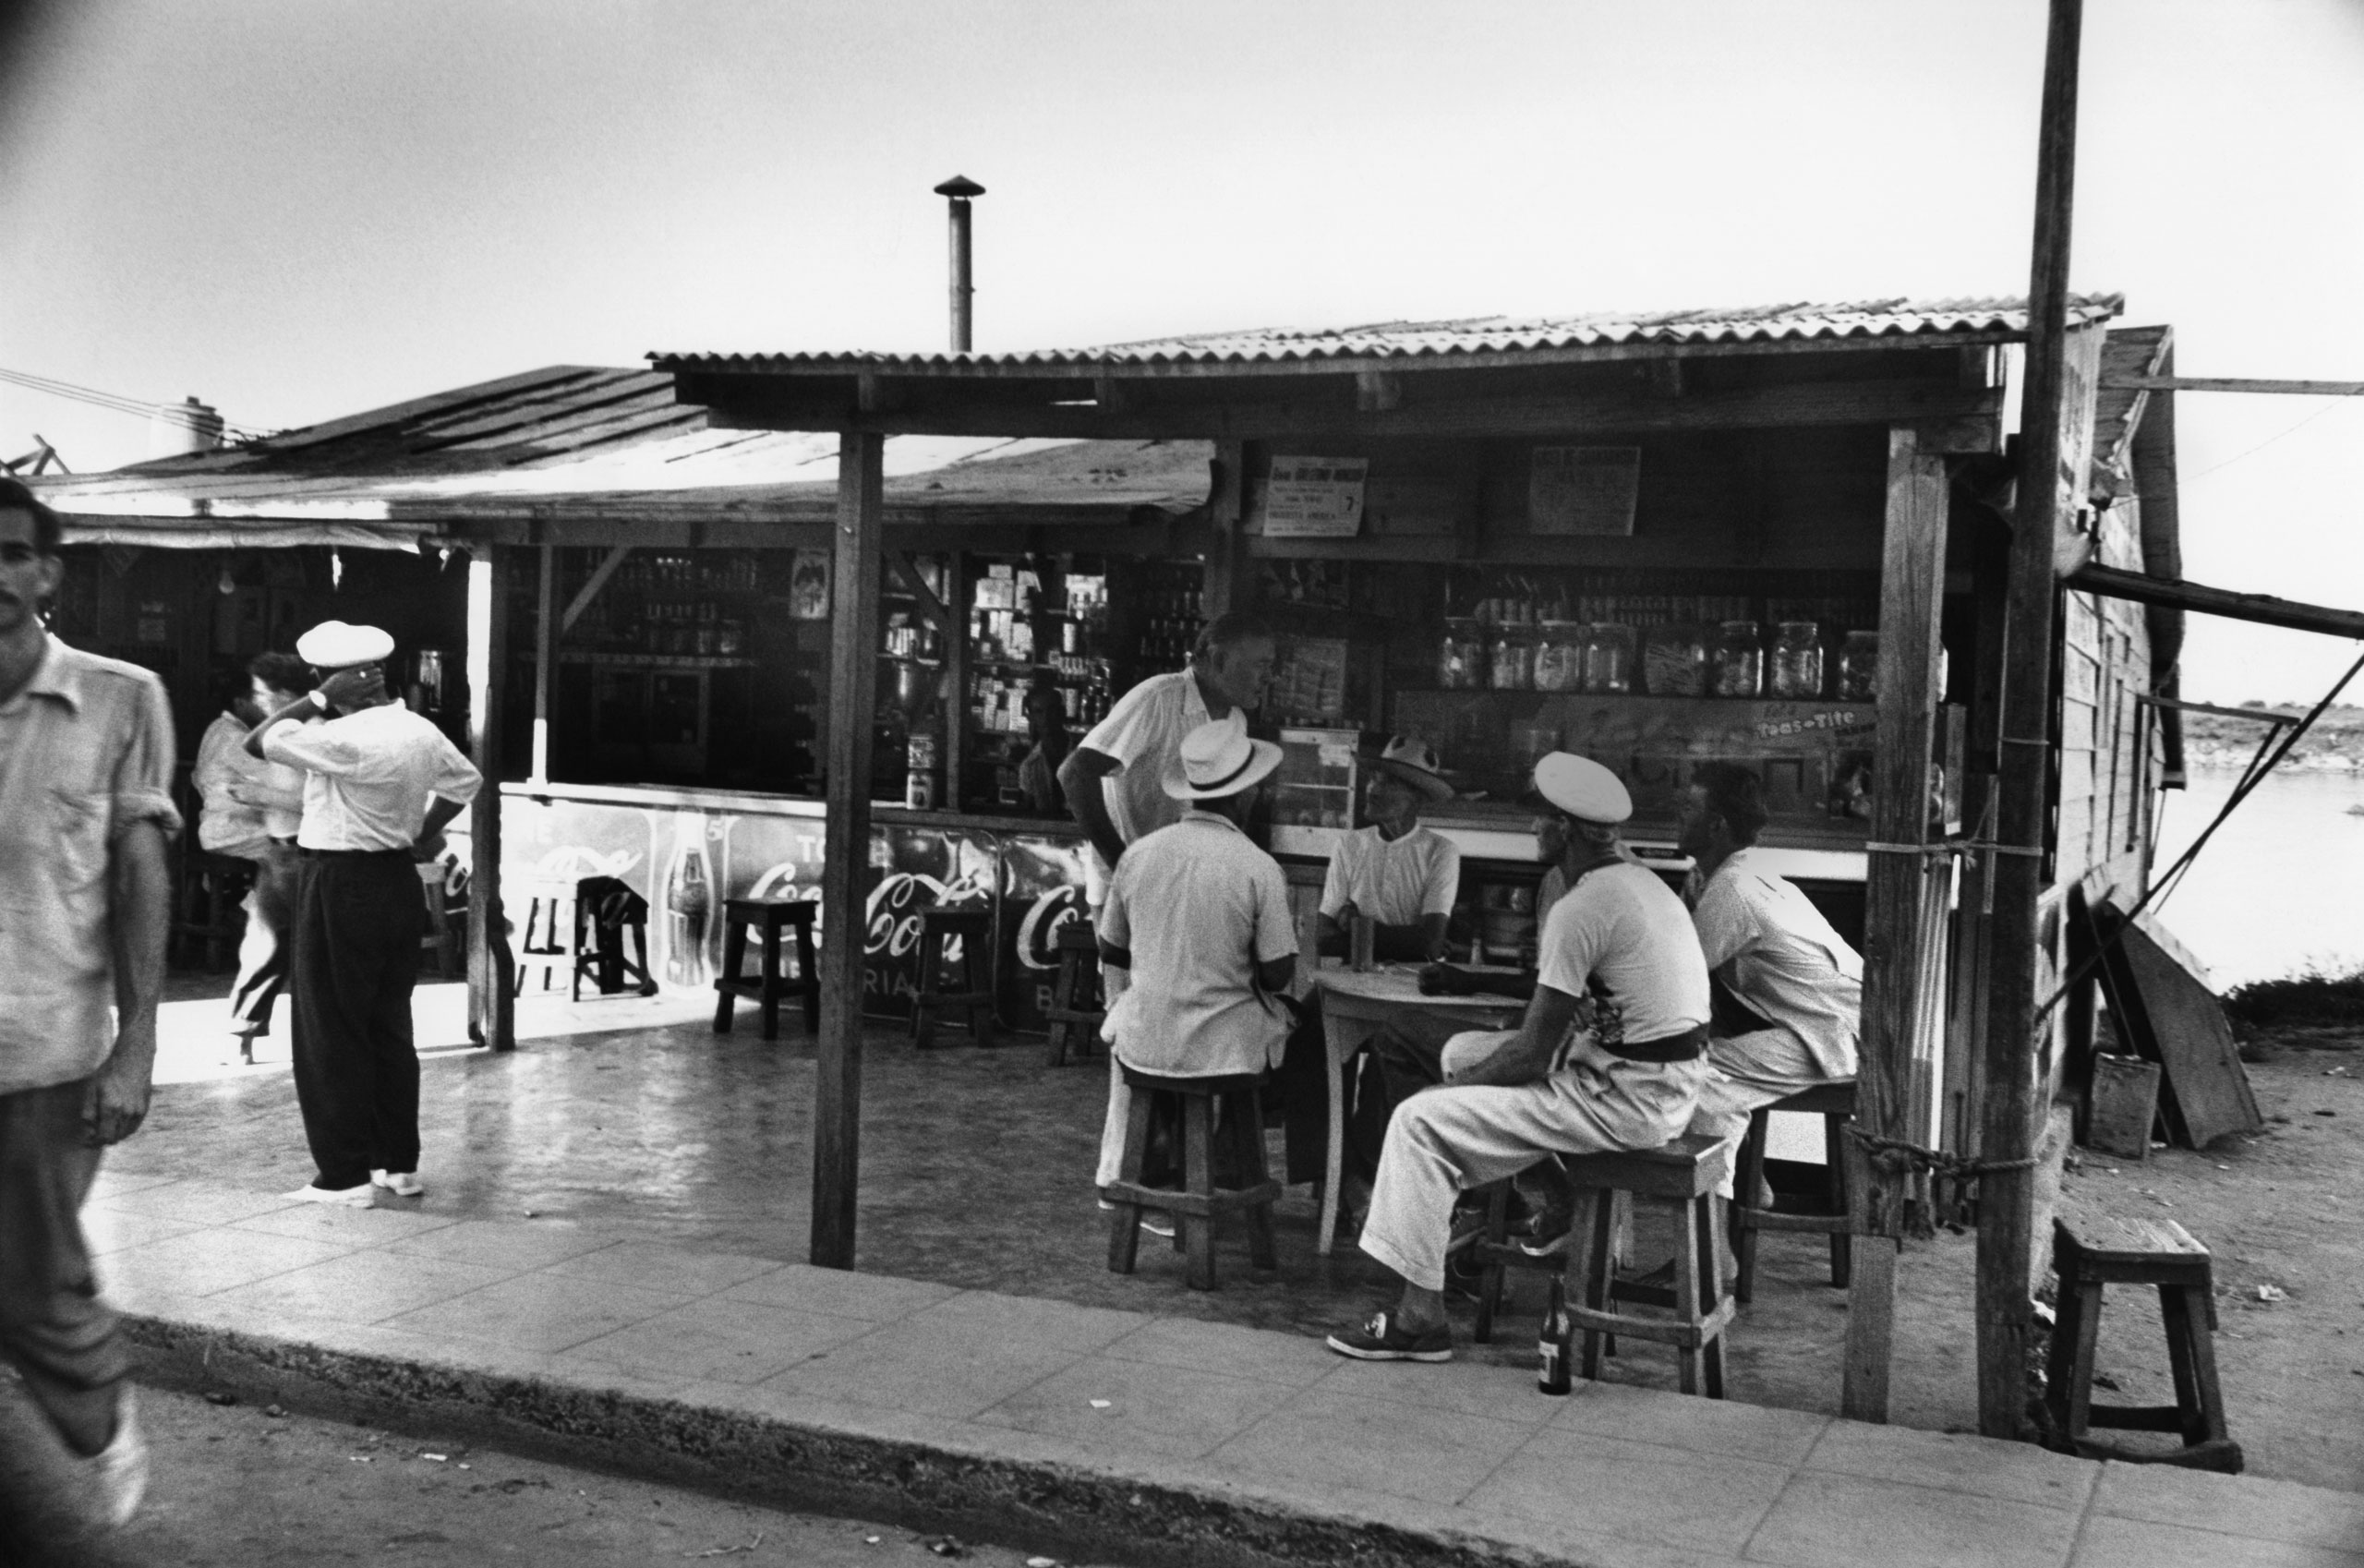 Ernest Hemingway chats with fellow patrons at a cafe he enjoyed frequenting in Cuba, 1952.